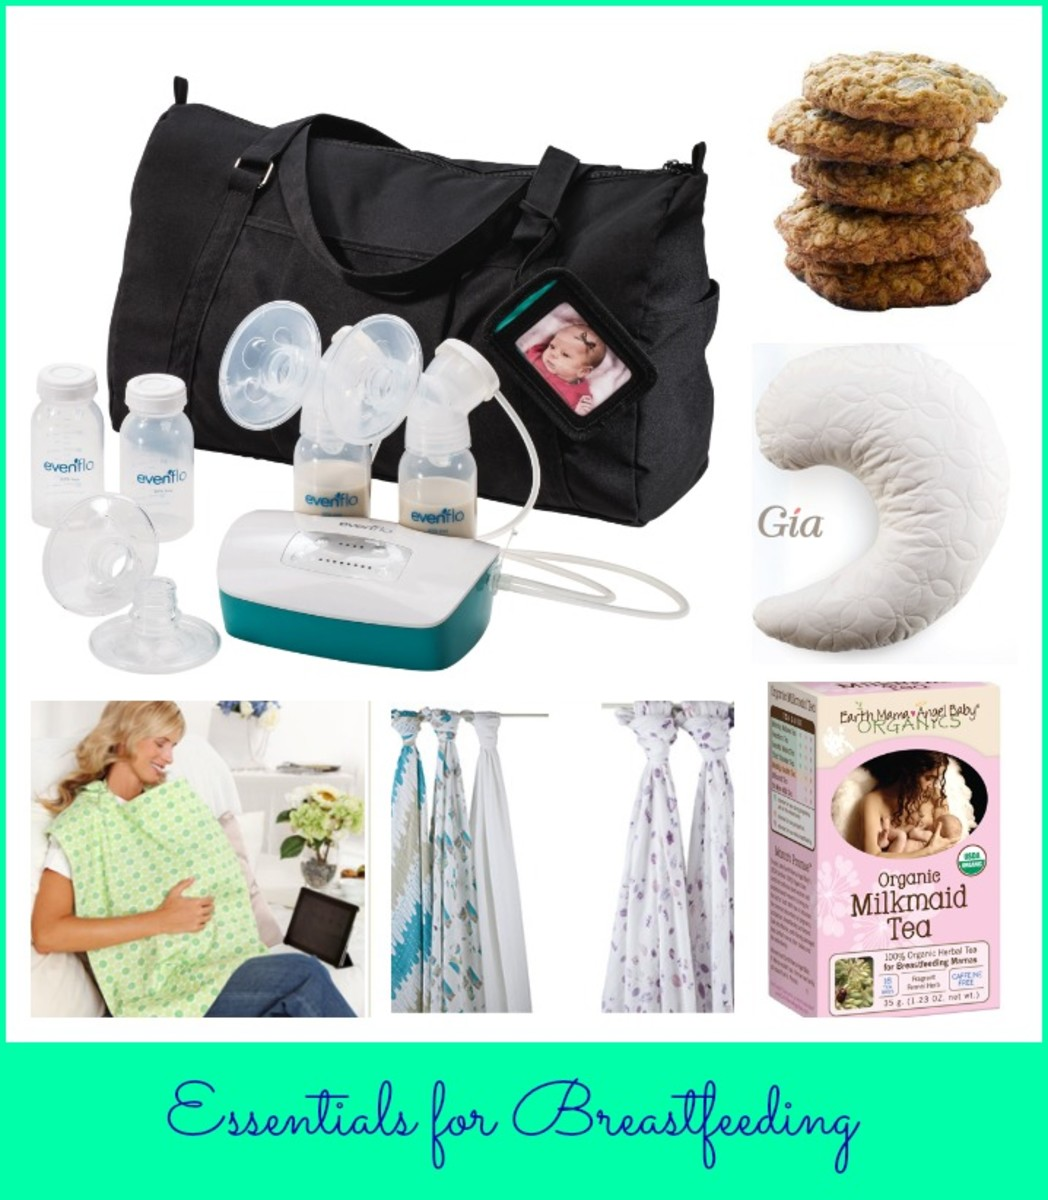 essentials for breastfeeding, evenflo, gia nursing pillow, earth mama angel baby tea, belly armor, aden & anais, milk makers cookies